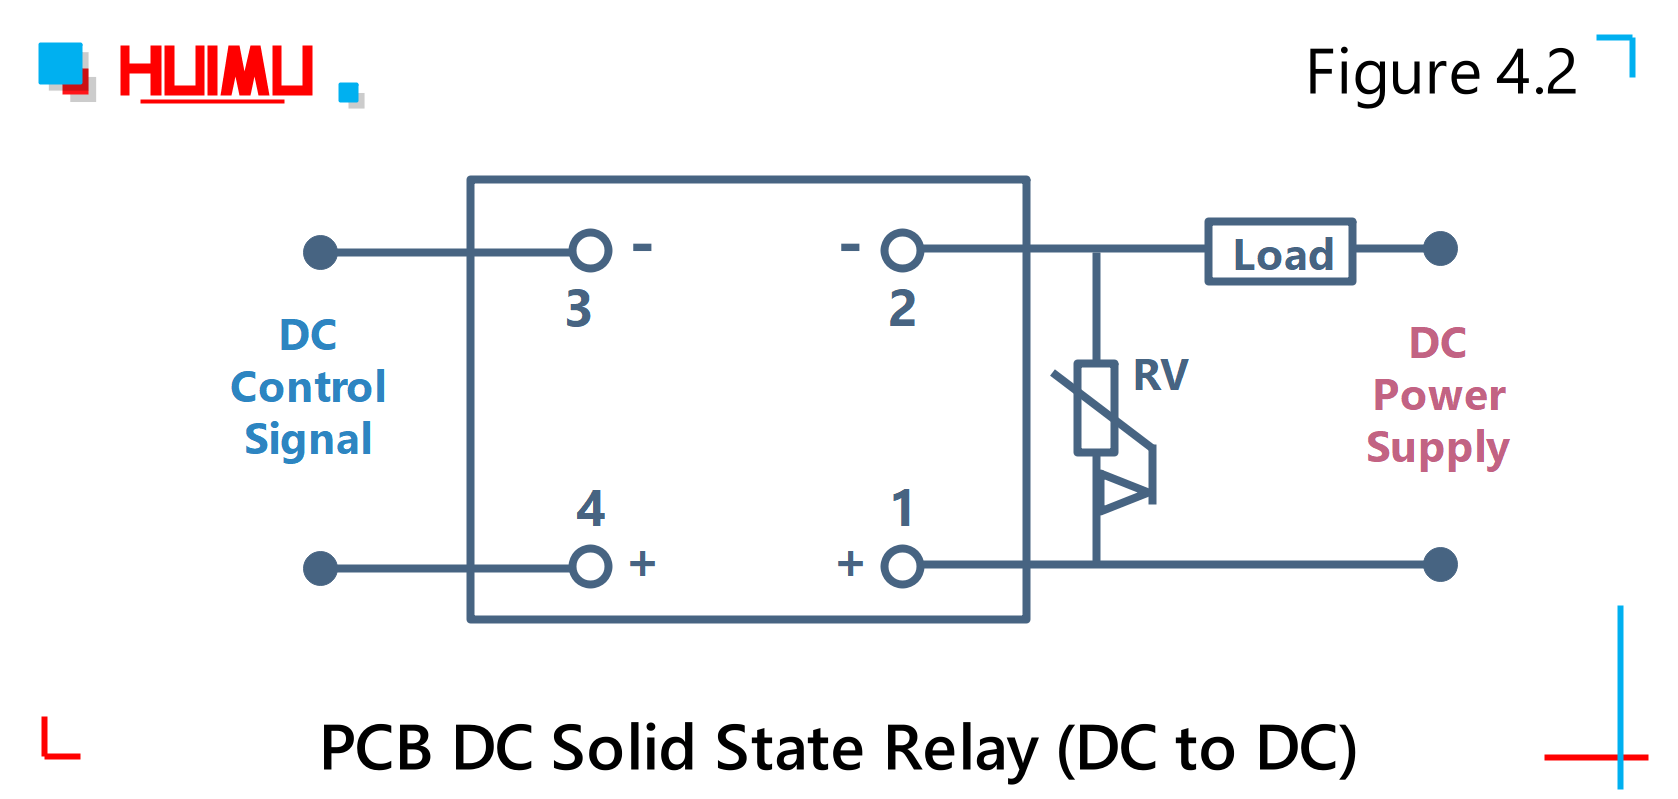 hight resolution of wiring diagram and circuit diagram of mgr mager pcb dc solid state relay dc to